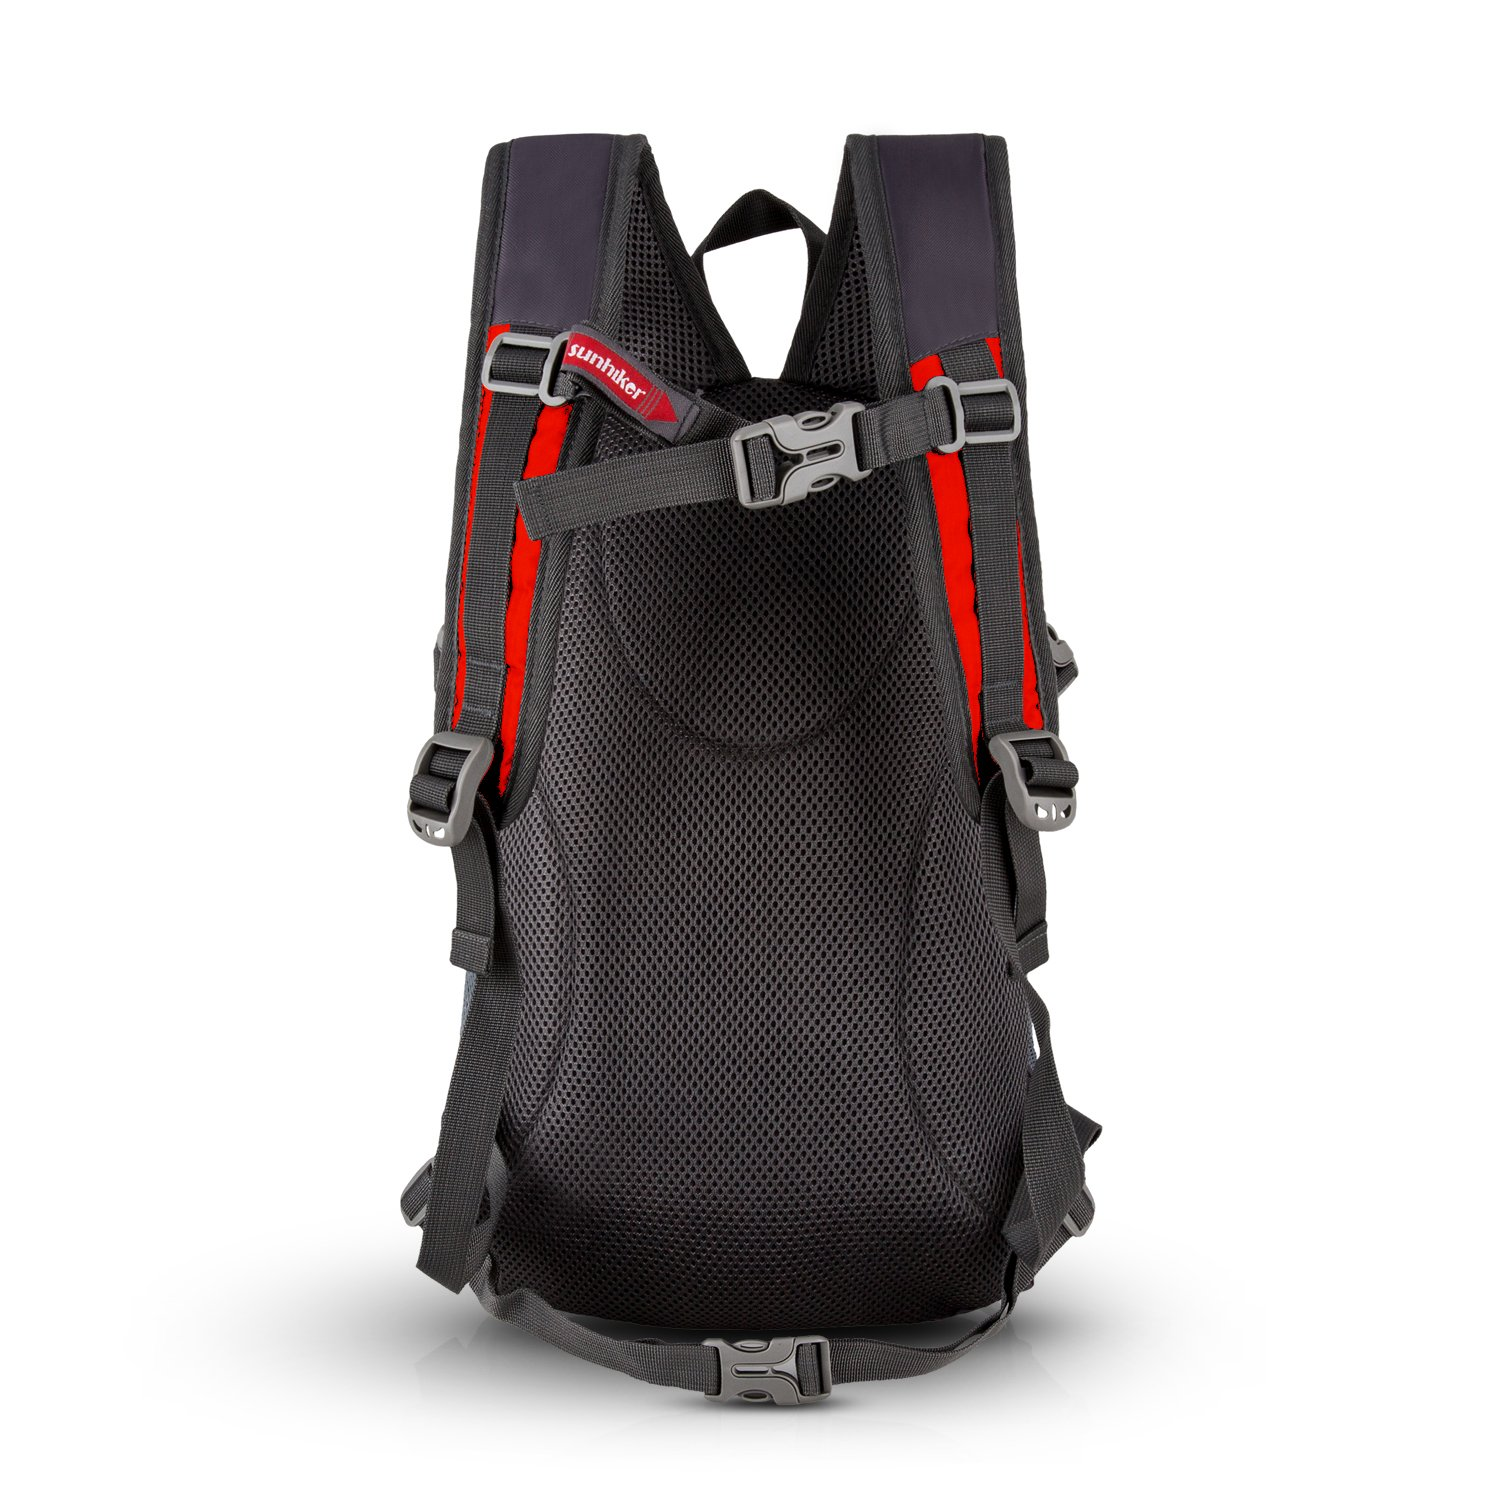 cd844ad3da Sunhiker Cycling Hiking Backpack Water Resistant Travel Backpack  Lightweight SMALL Daypack M0714 (red)  Amazon.co.uk  Sports   Outdoors